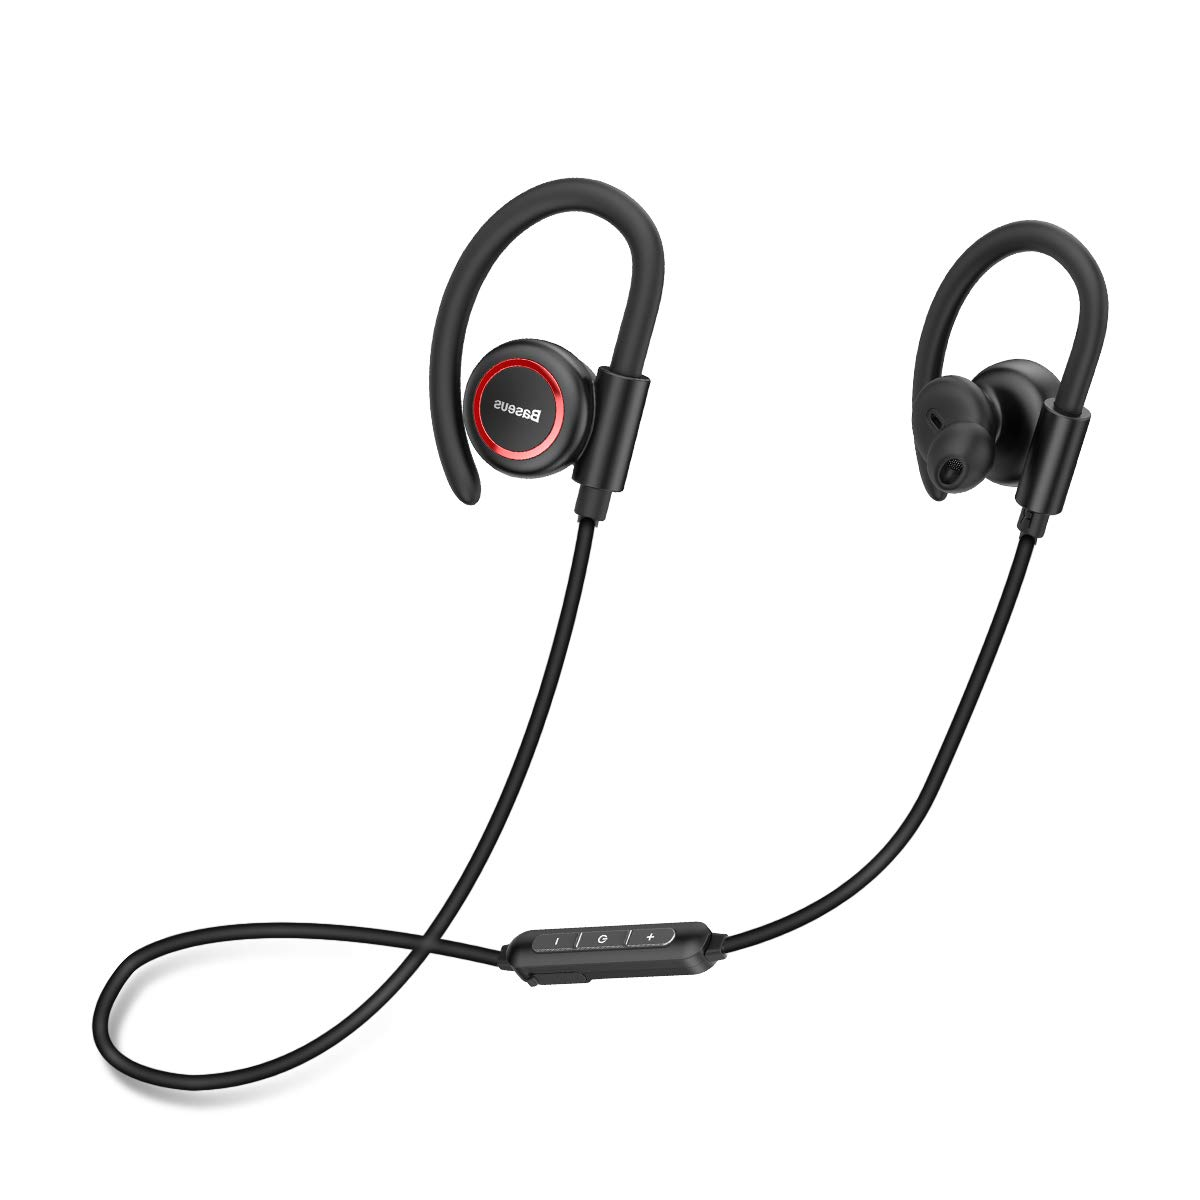 Bluetooth Headphones, Baseus Wireless Earbuds Bluetooth 5.0 HD Stereo Headset Waterproof Sweatproof 7-10 Hrs Playback Noise Cancelling Headsets in-Ear Earbuds Sports for Running, Cycling, Workout, Gym